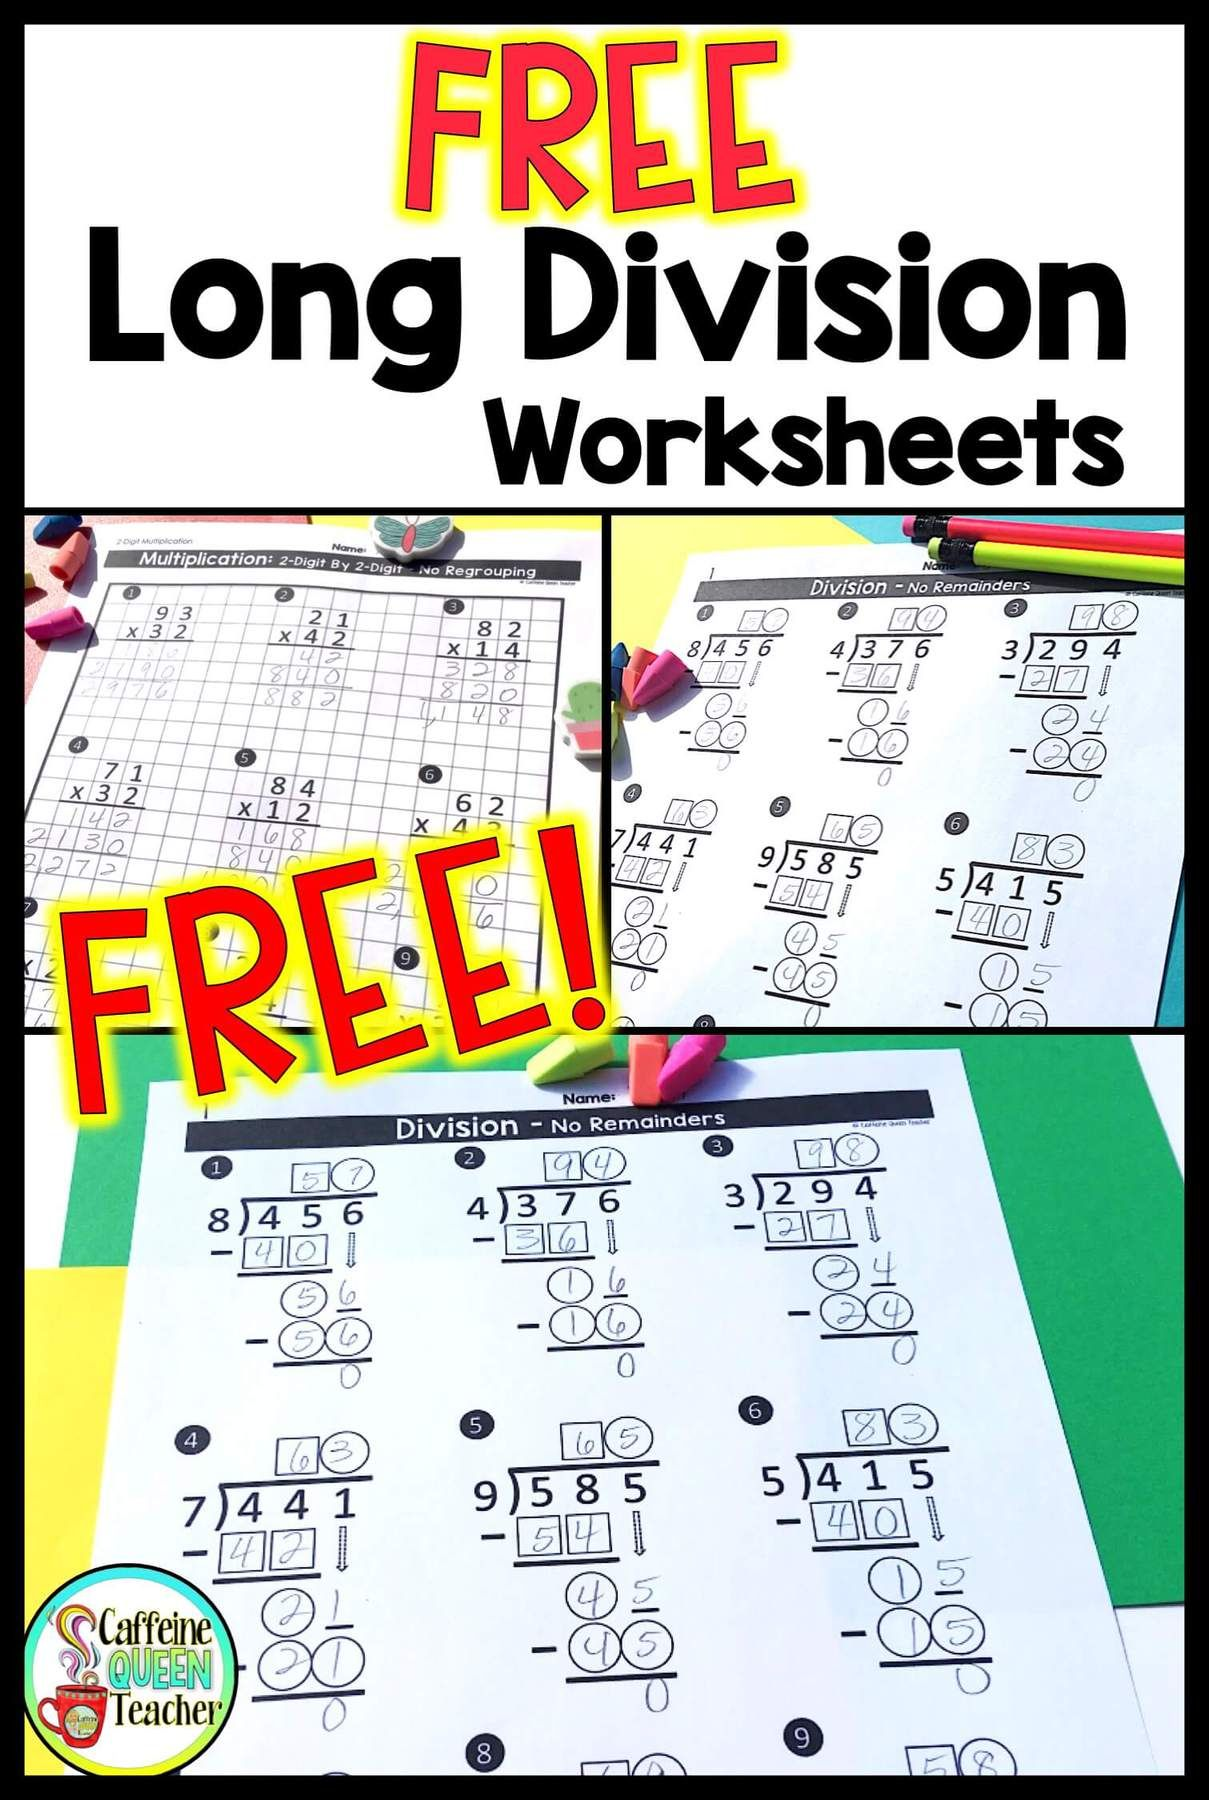 Differentiated Long Division Worksheets For Free